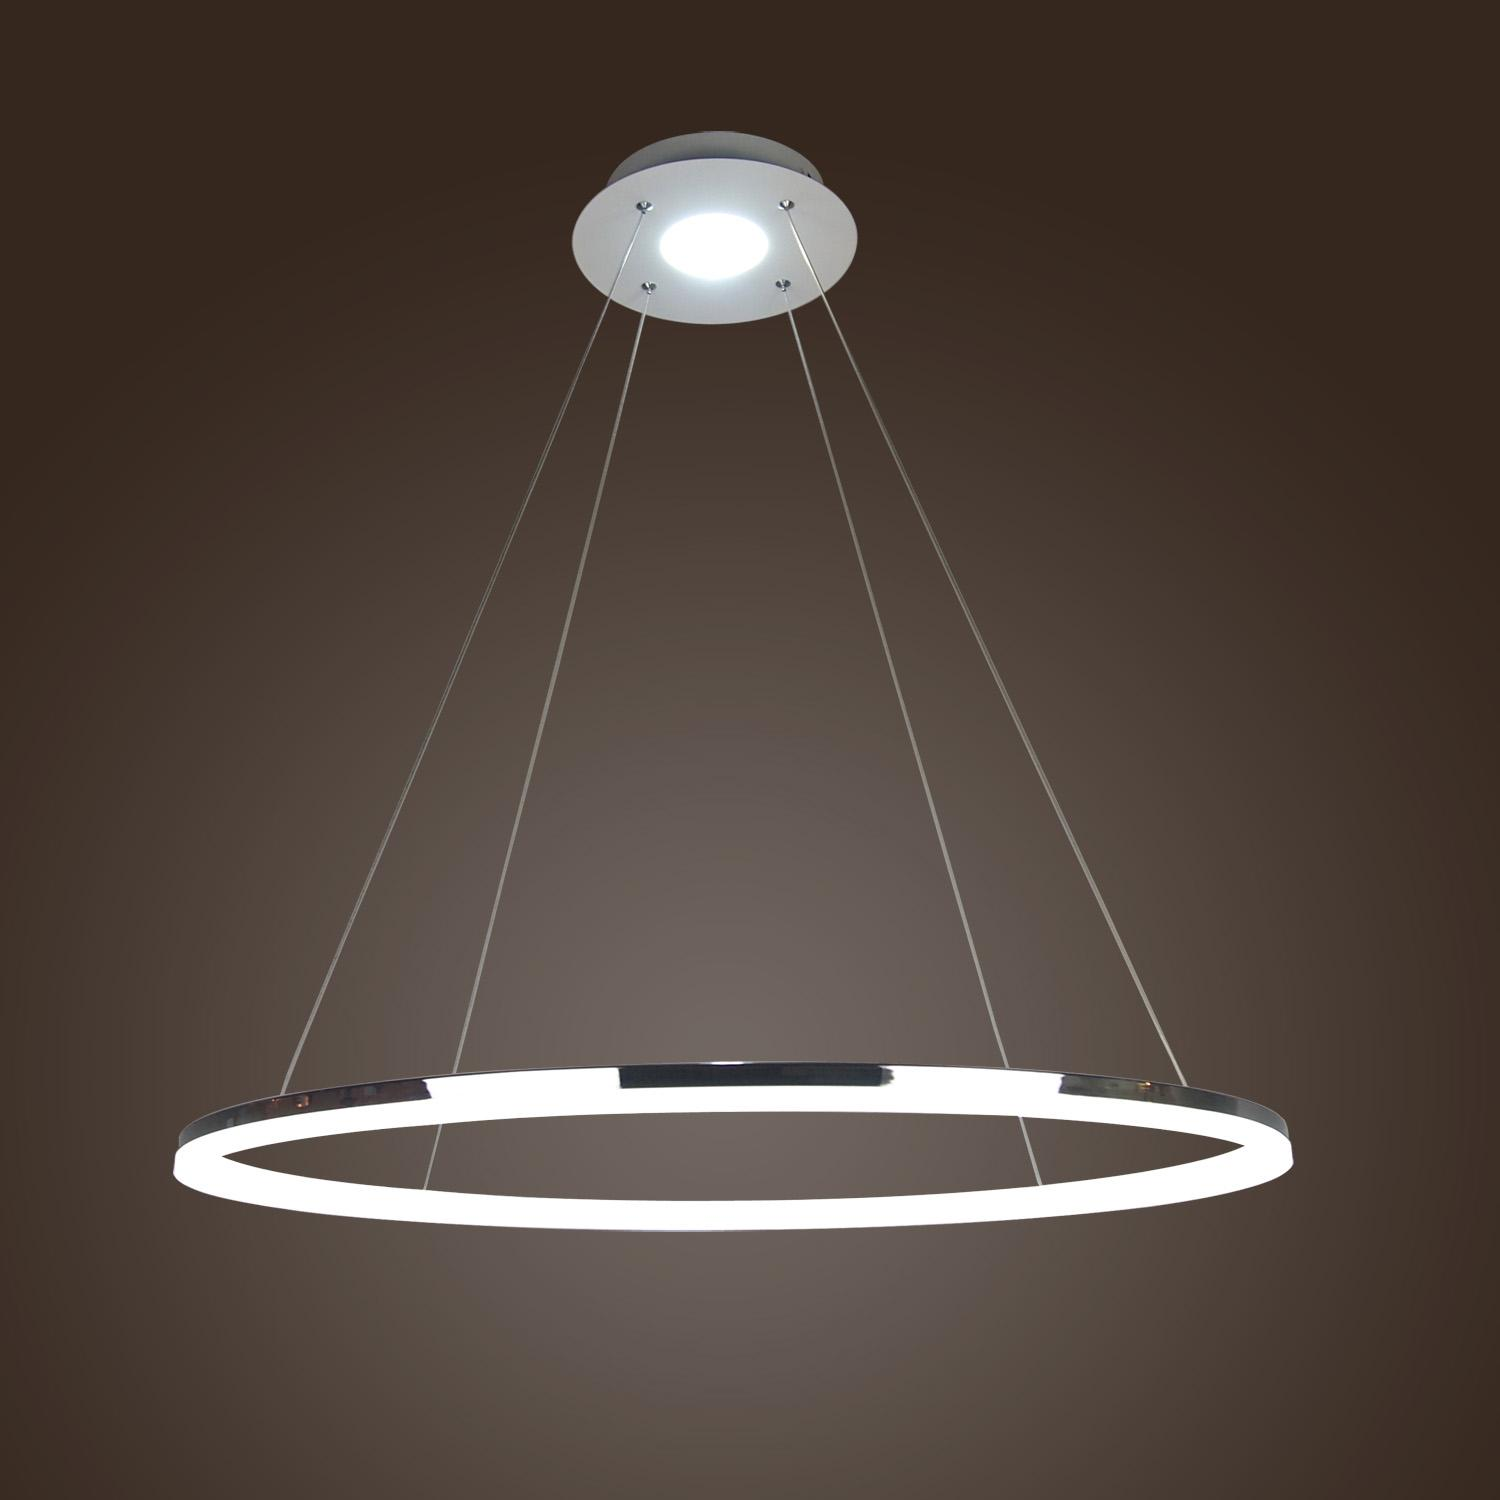 Acrylic led ring chandelier pendant lamp ceiling light lighting fixtures modern ebay - Light fixtures chandeliers ...